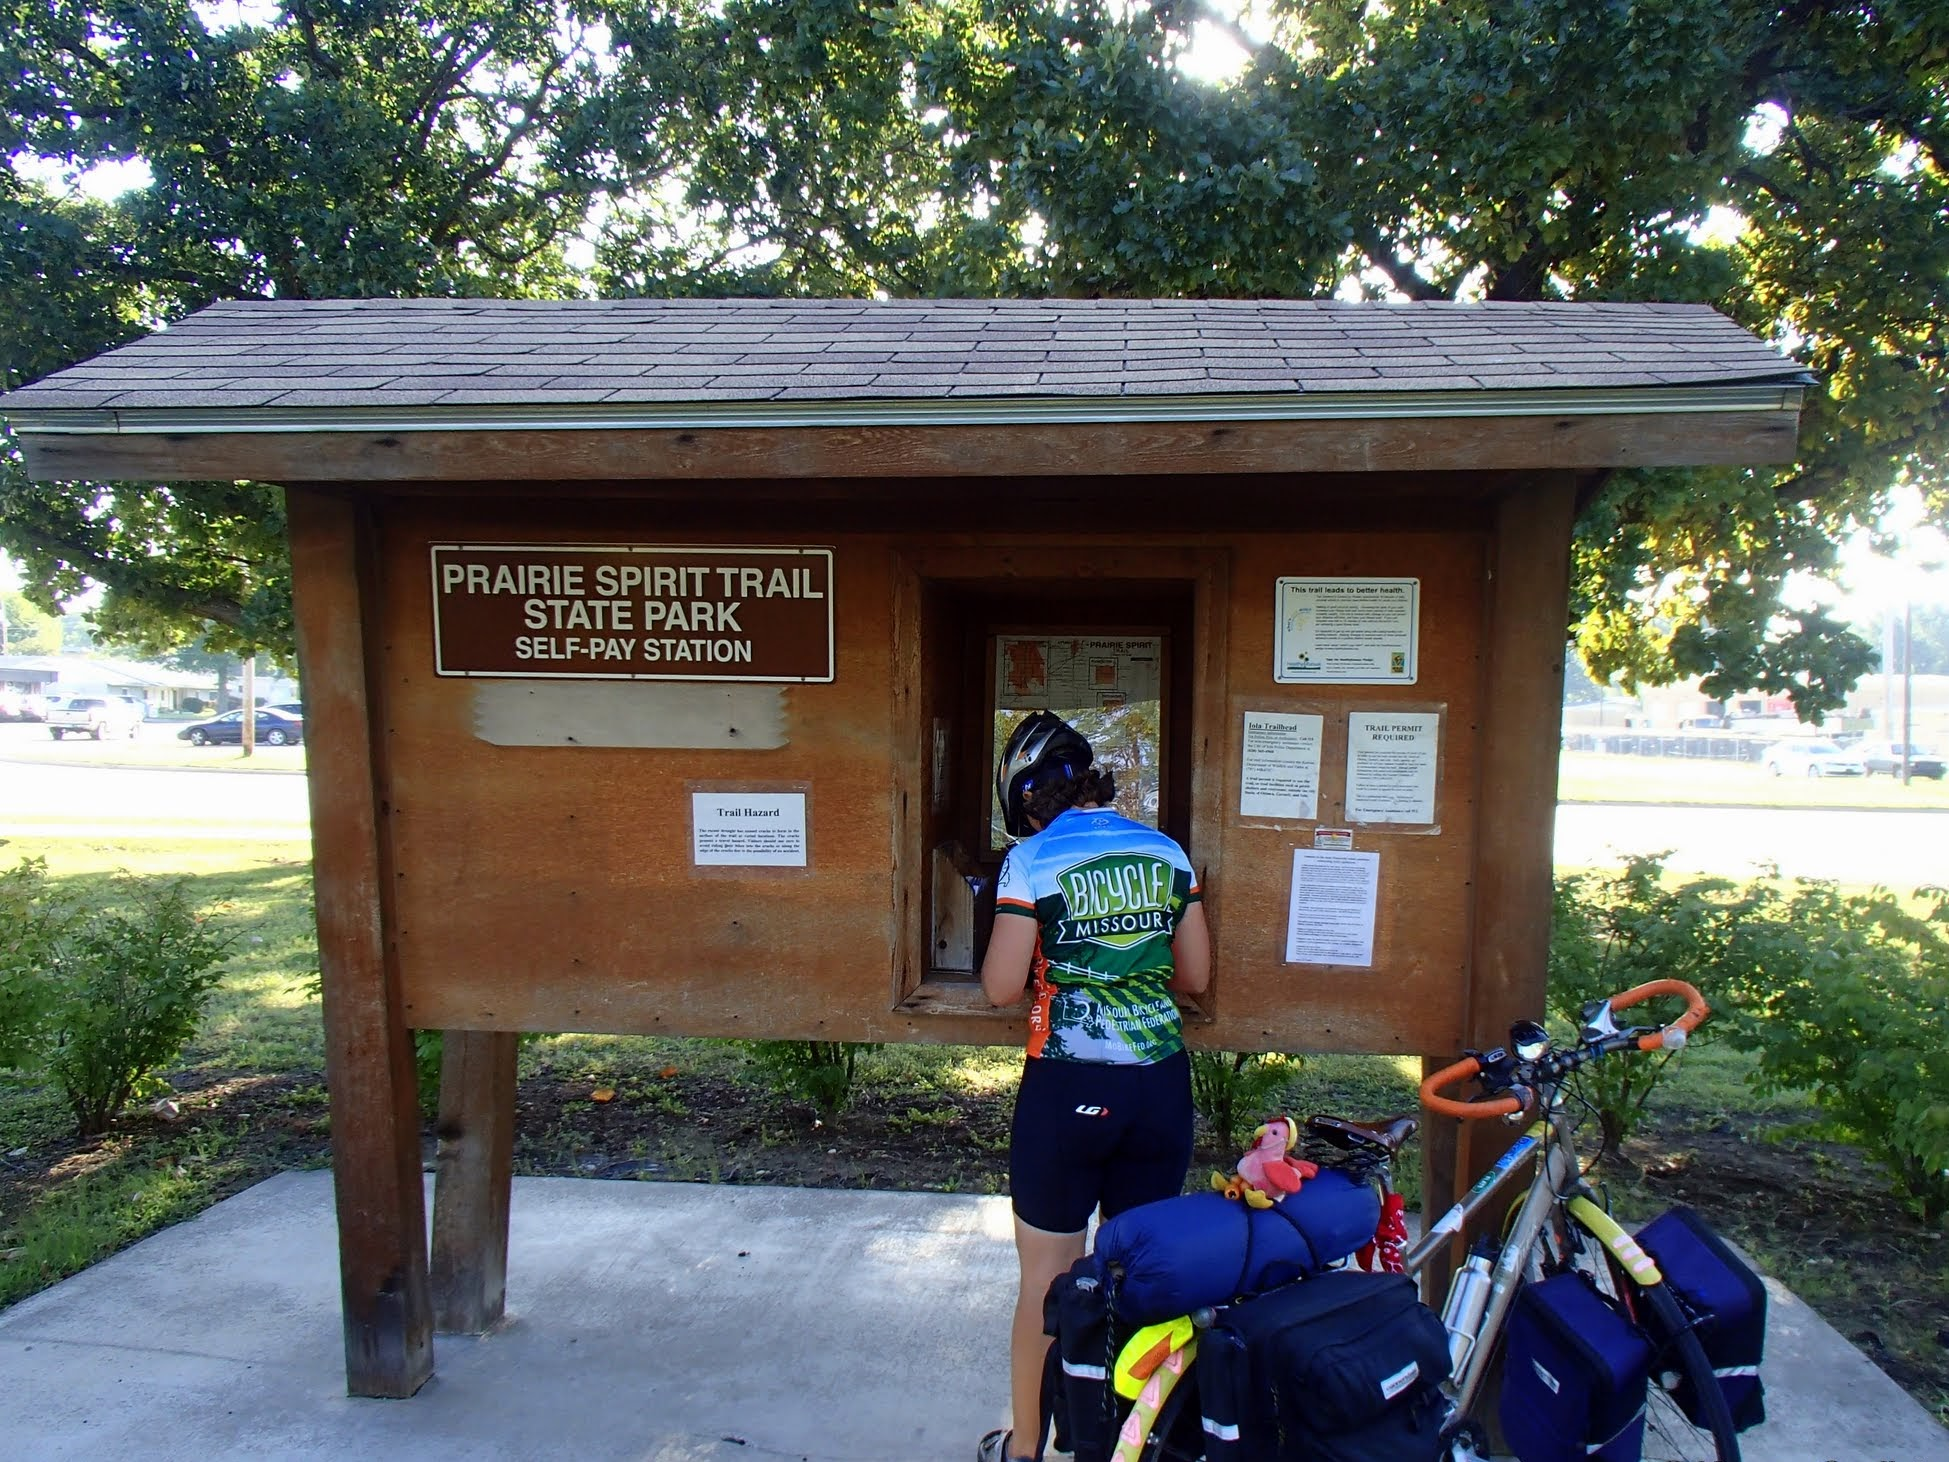 Prairie Spirit Trail Self-Pay Station